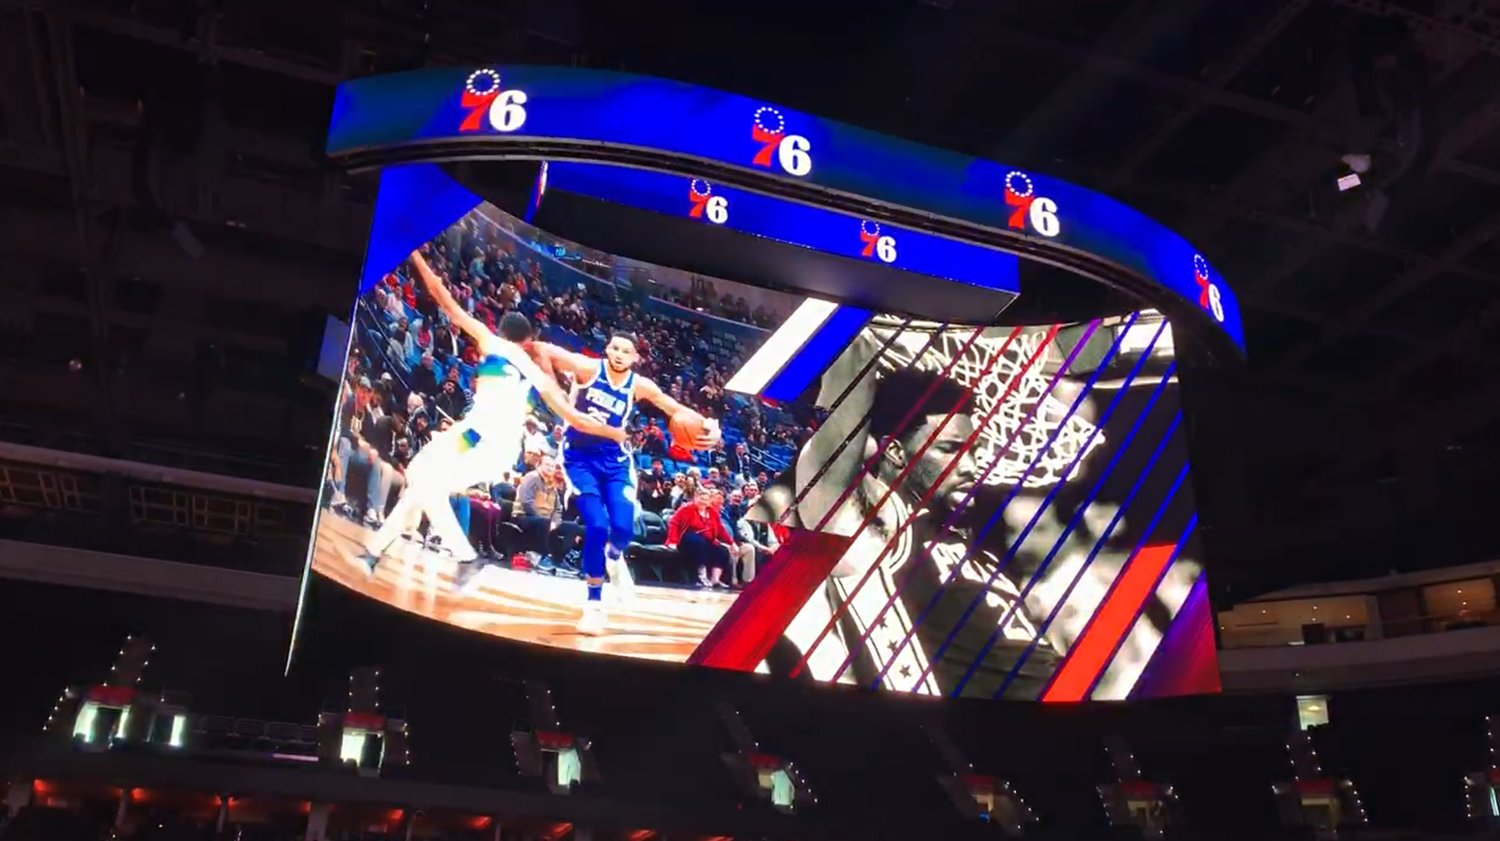 For the win: ANC'S 4K kinetic scoreboard is an SCN 2019 Install of the Year